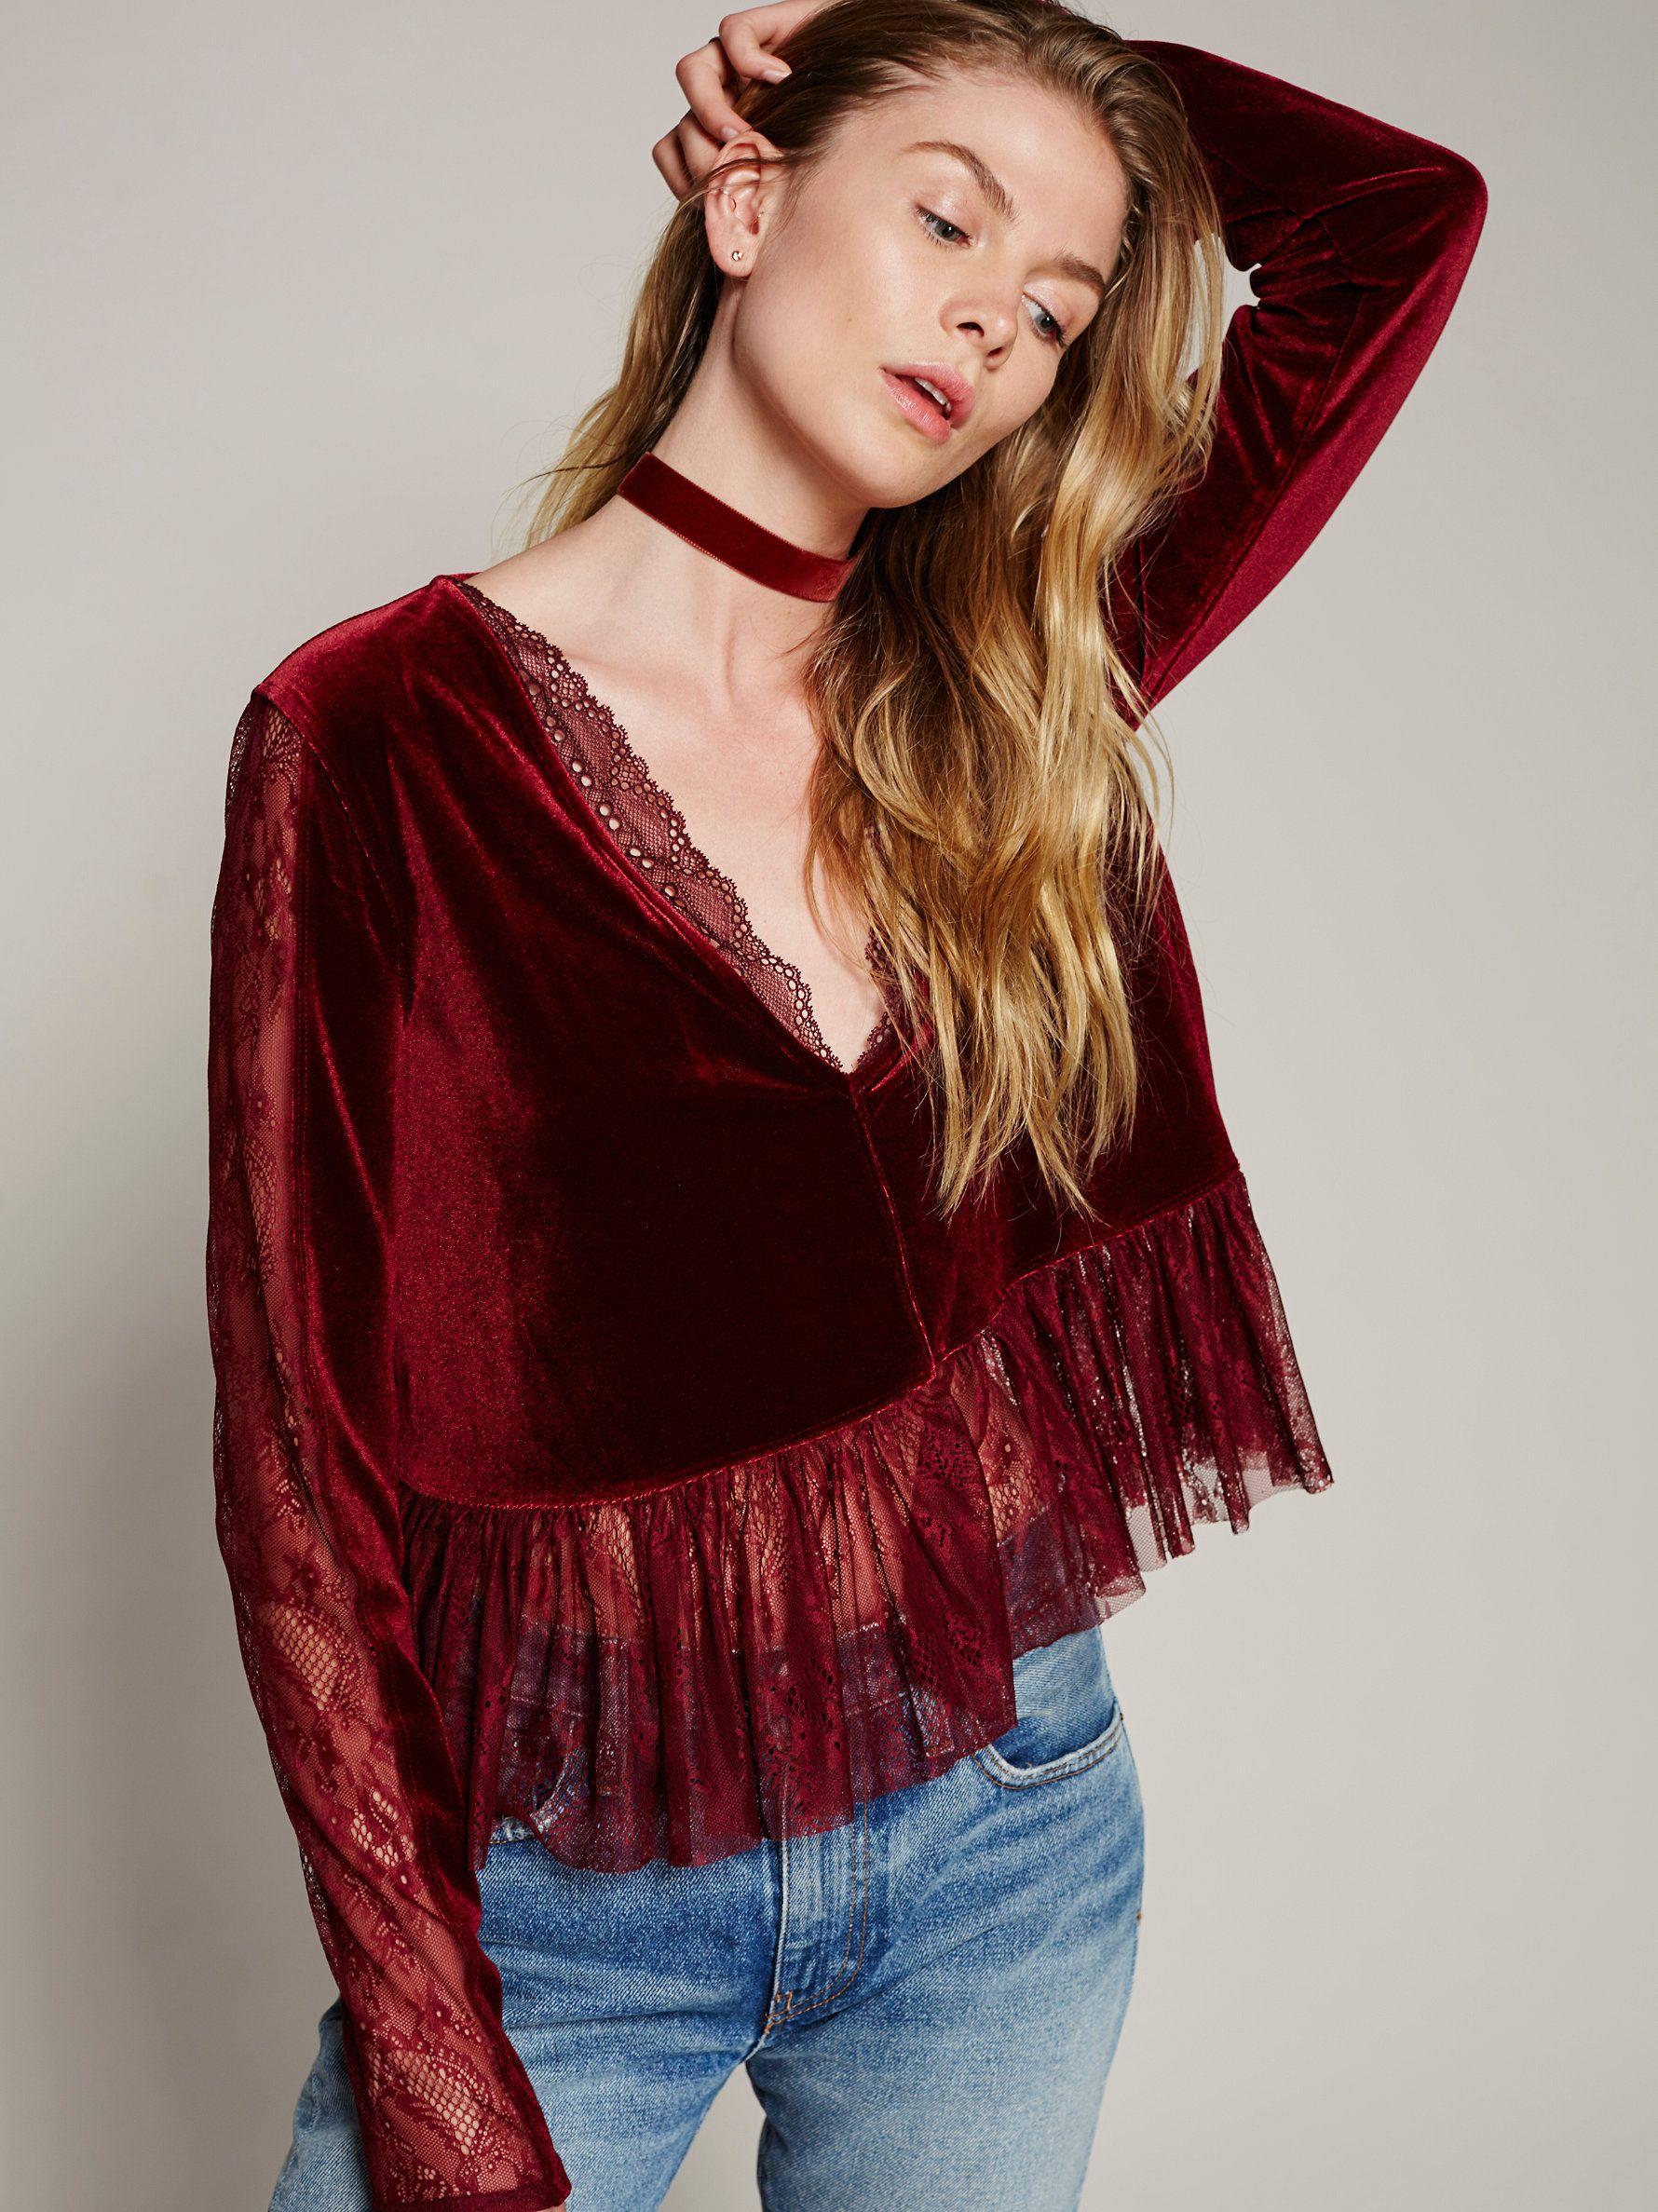 b02279f1d30d7d Lolita Top at Free People Clothing Boutique